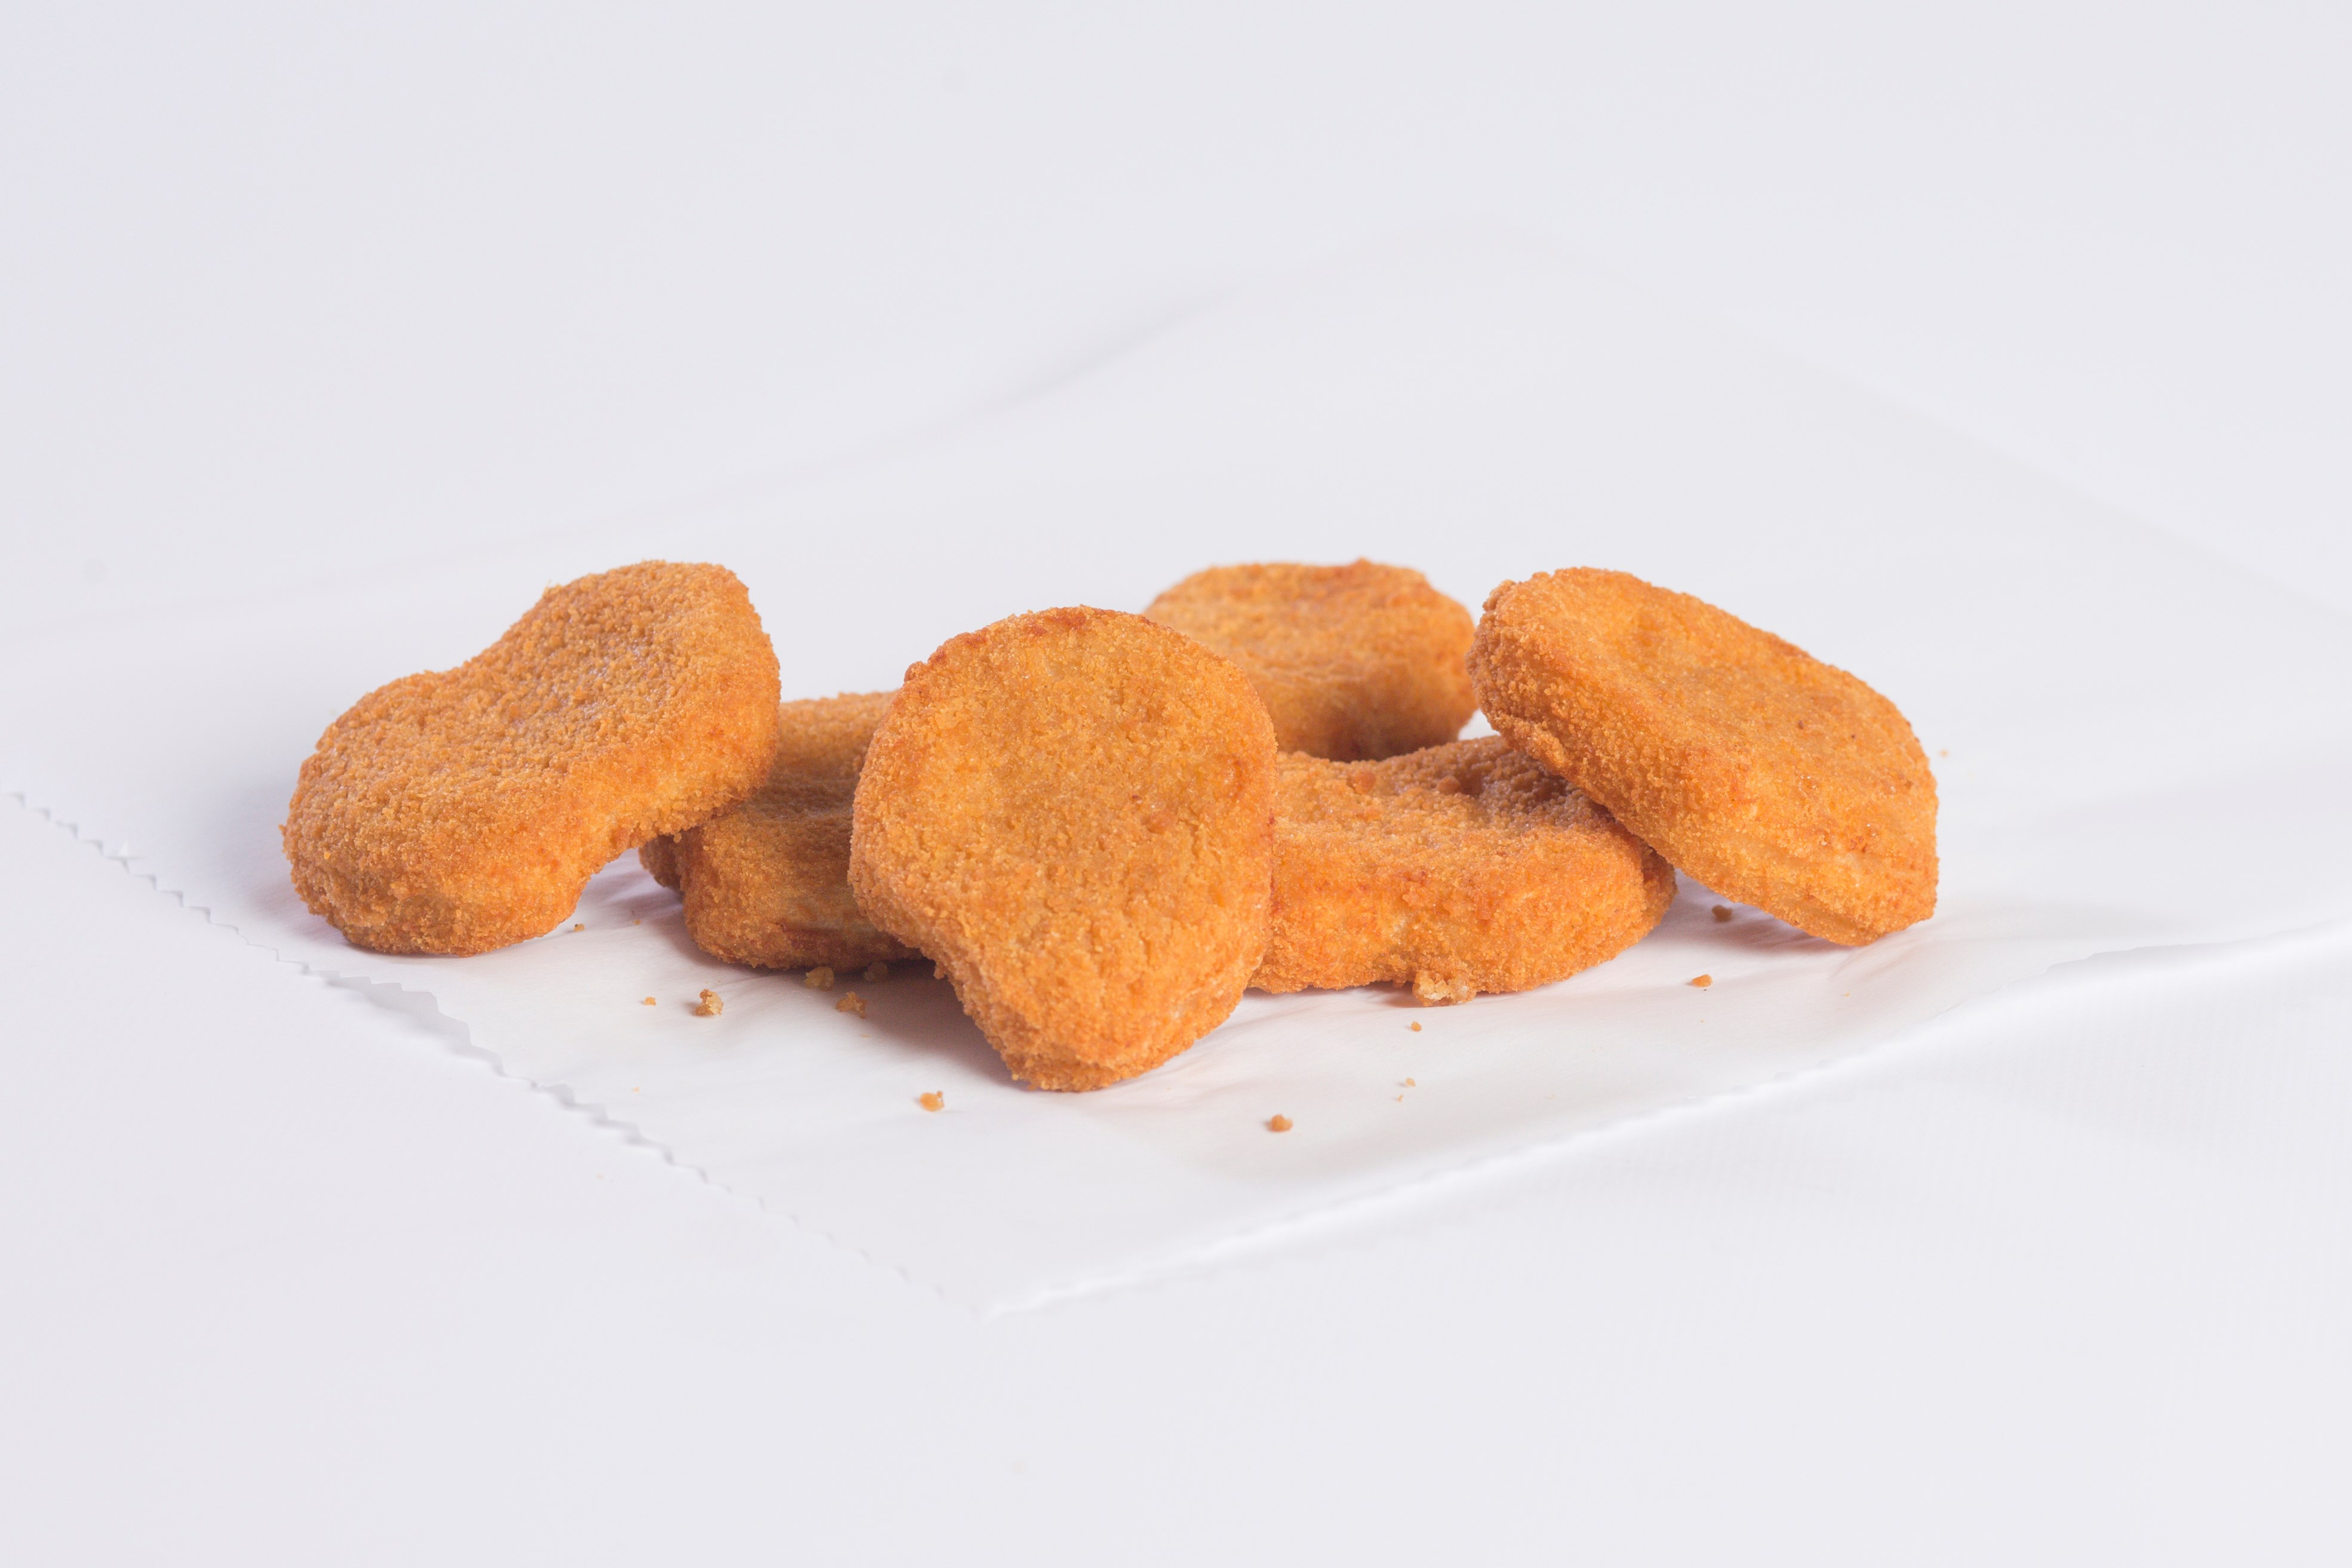 612100 Whole Grain Breaded Nuggets image